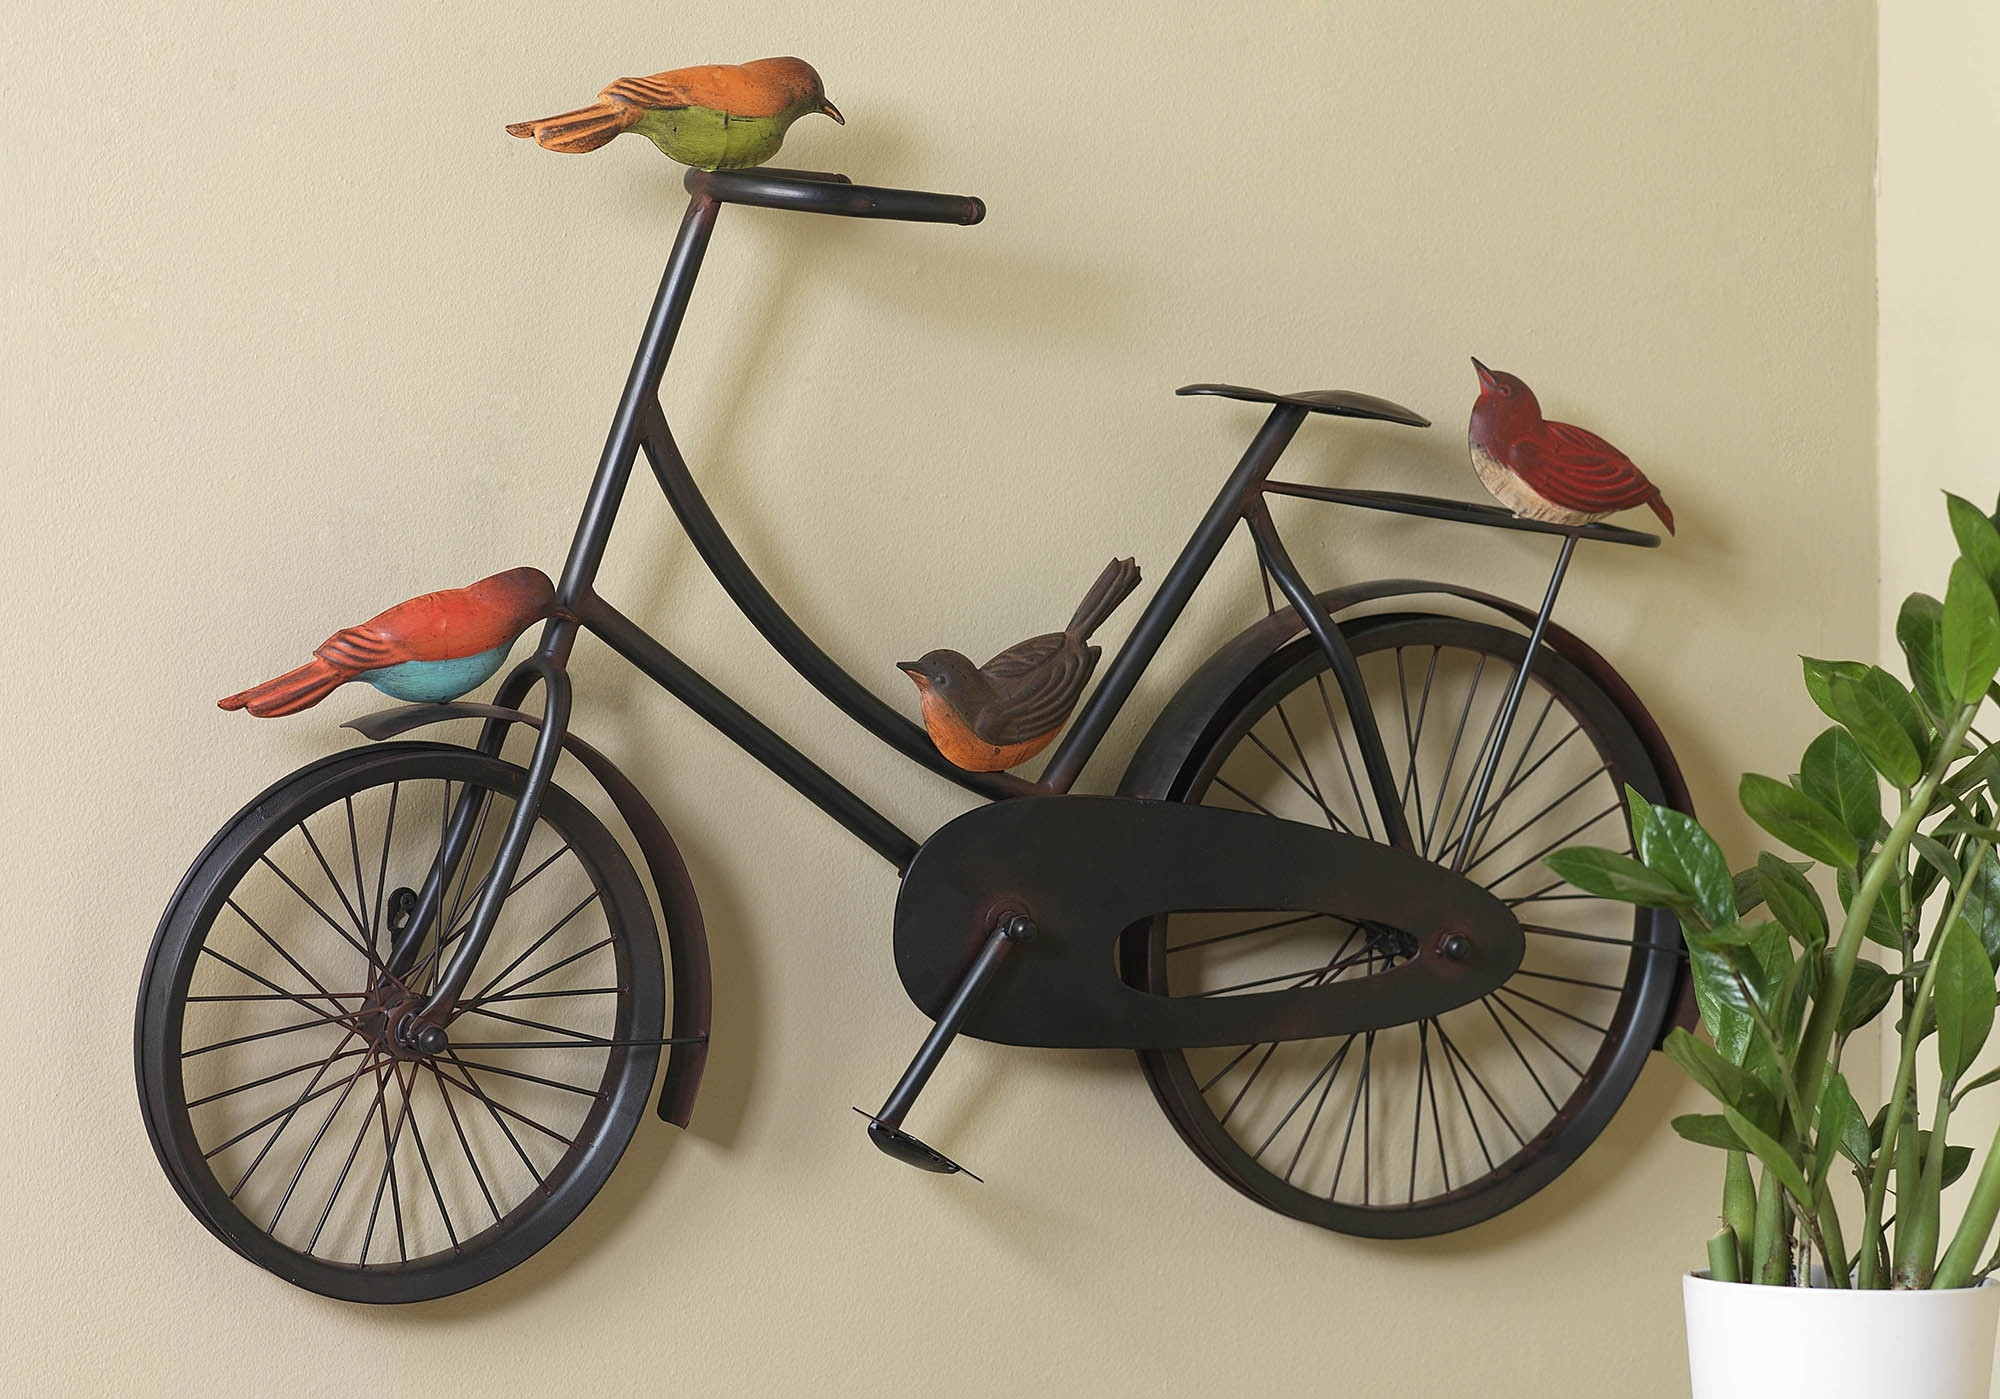 37 Bicycle Wall Art, Iron Bicycle Wall Art Black Wood Frame Fathers within Most Up-to-Date Bicycle Wall Art